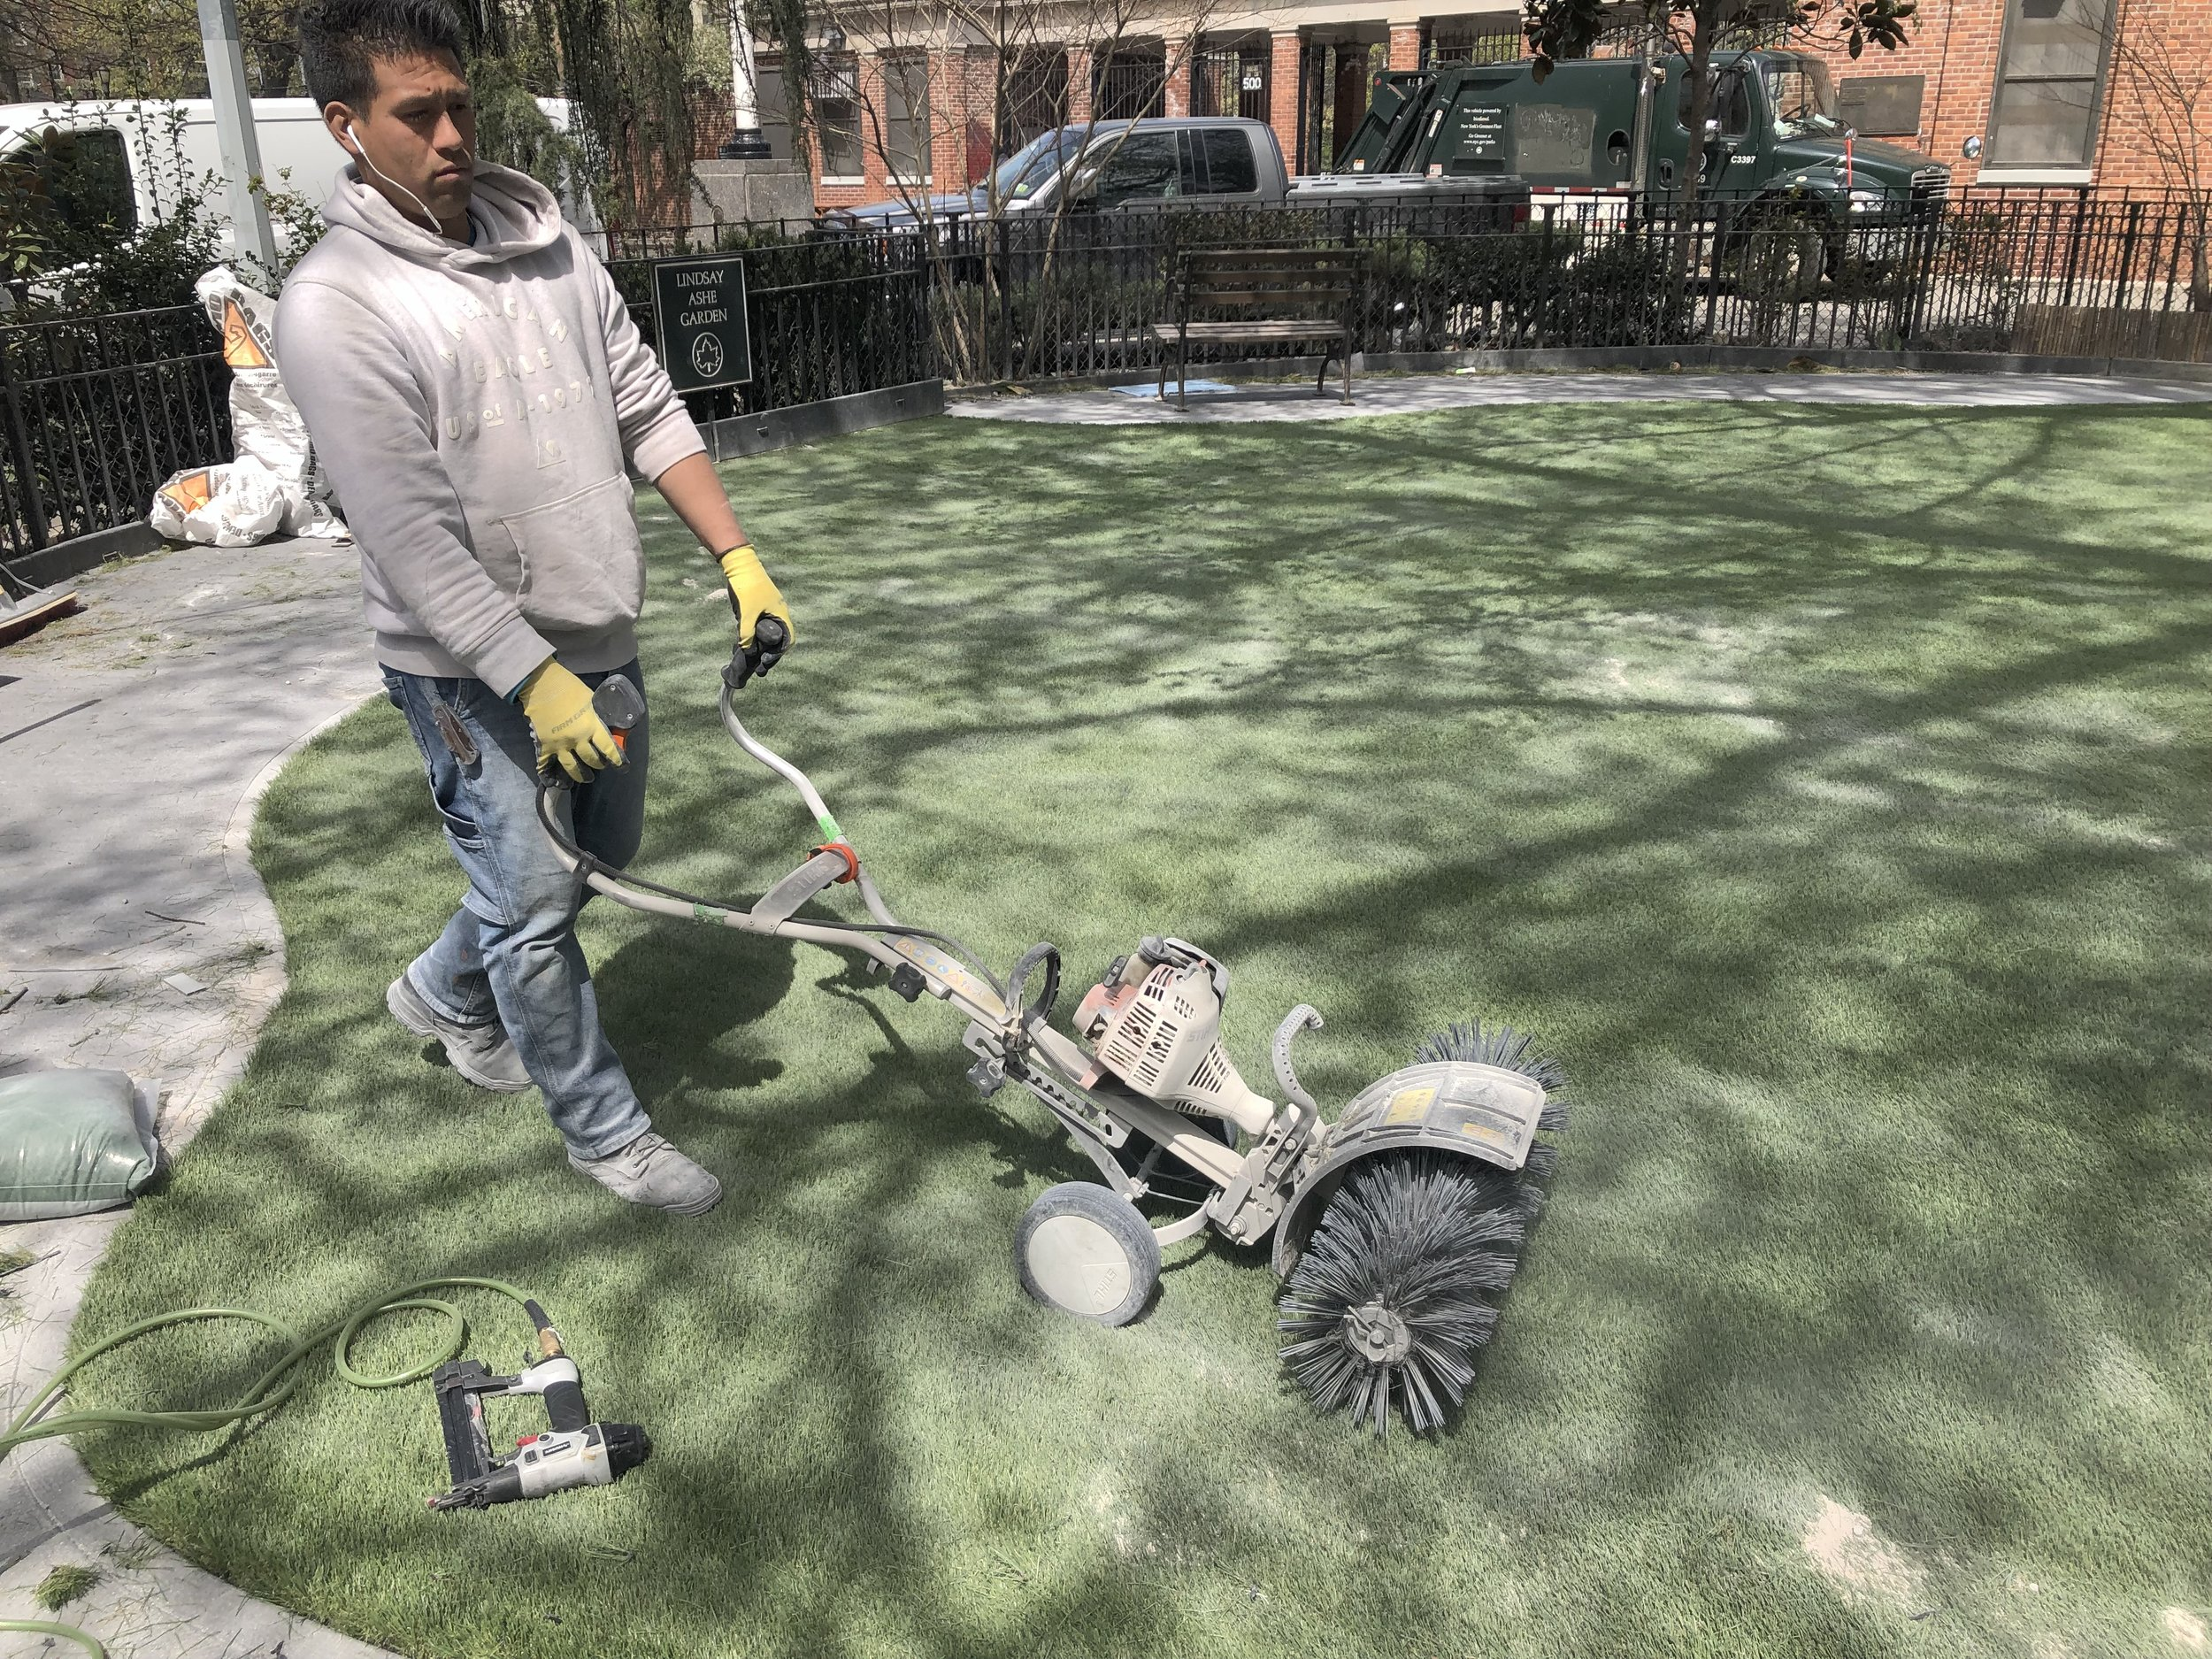 Zeolite is buffed into the grass for odor control